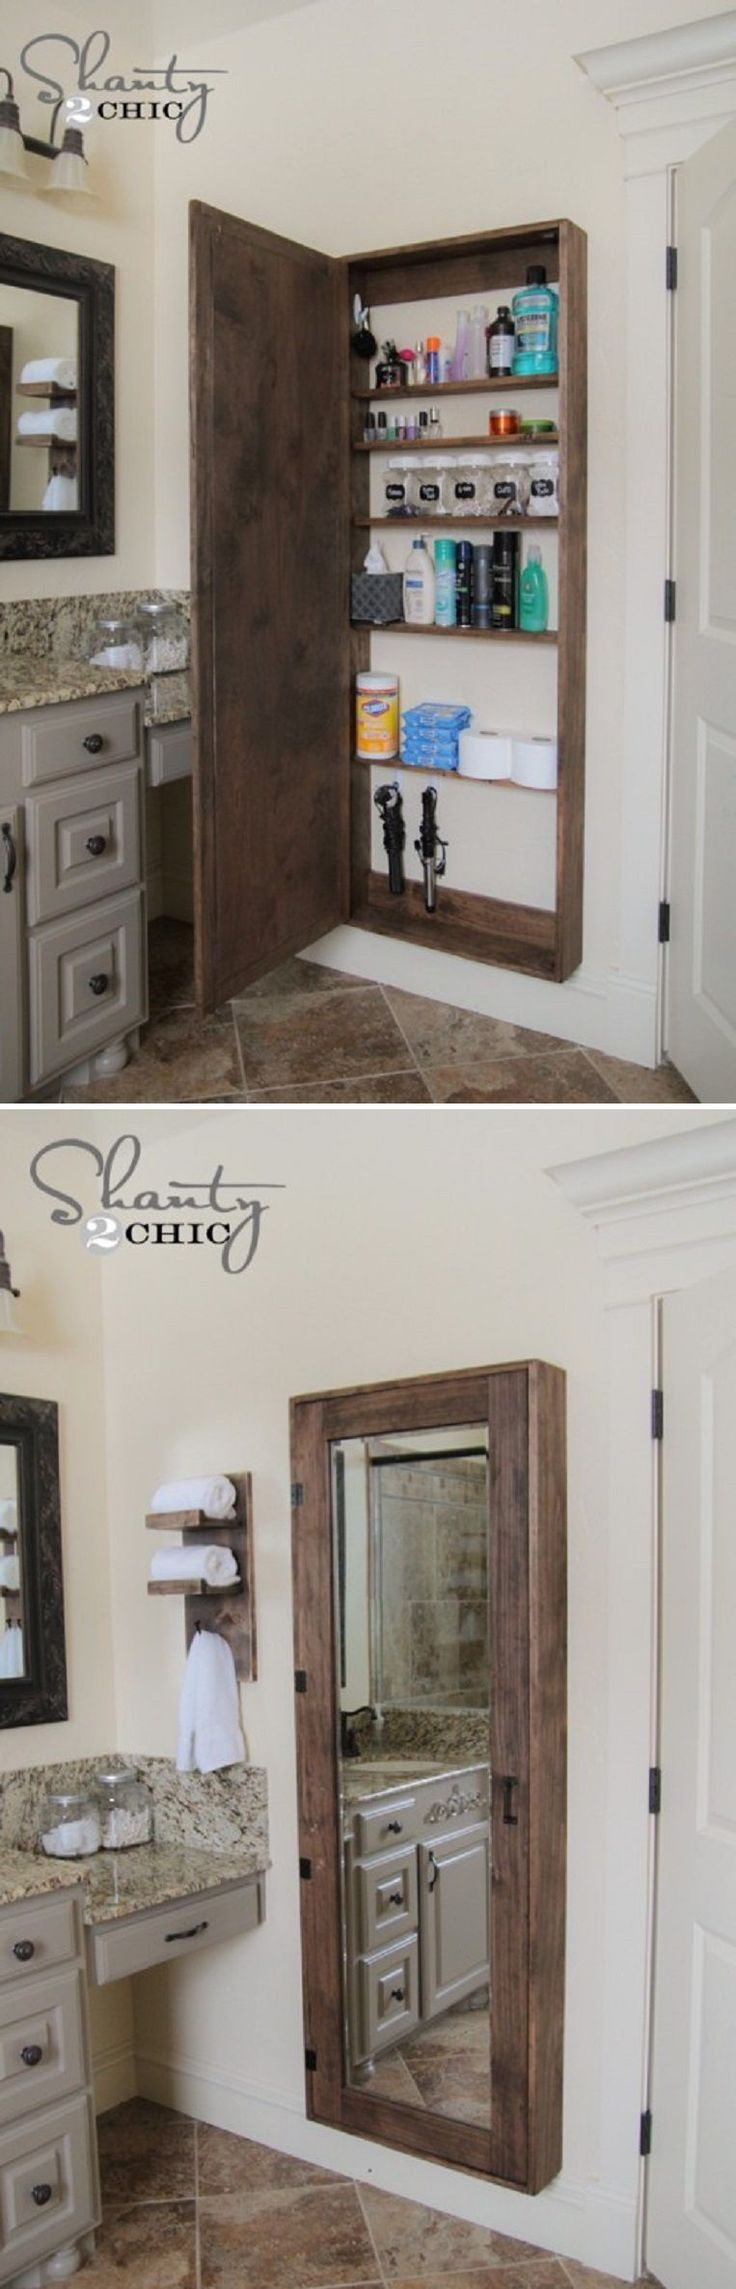 Bathroom cabinet storage solutions - 17 Best Ideas About Small Bathroom Storage On Pinterest Kids Bathroom Storage Bathroom Storage Diy And Small Bathroom Decorating